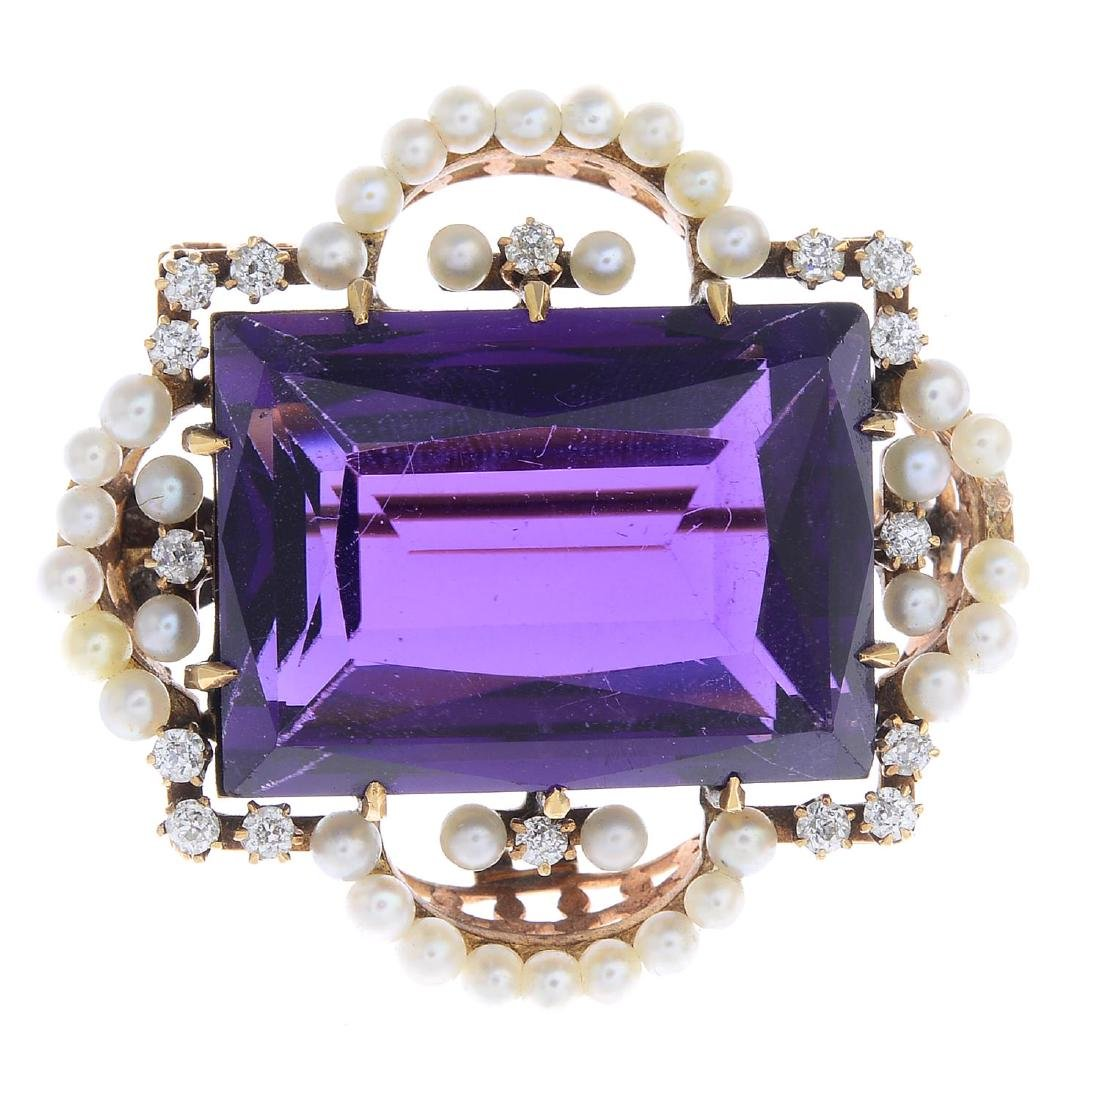 An early 20th century gold amethyst, diamond and seed